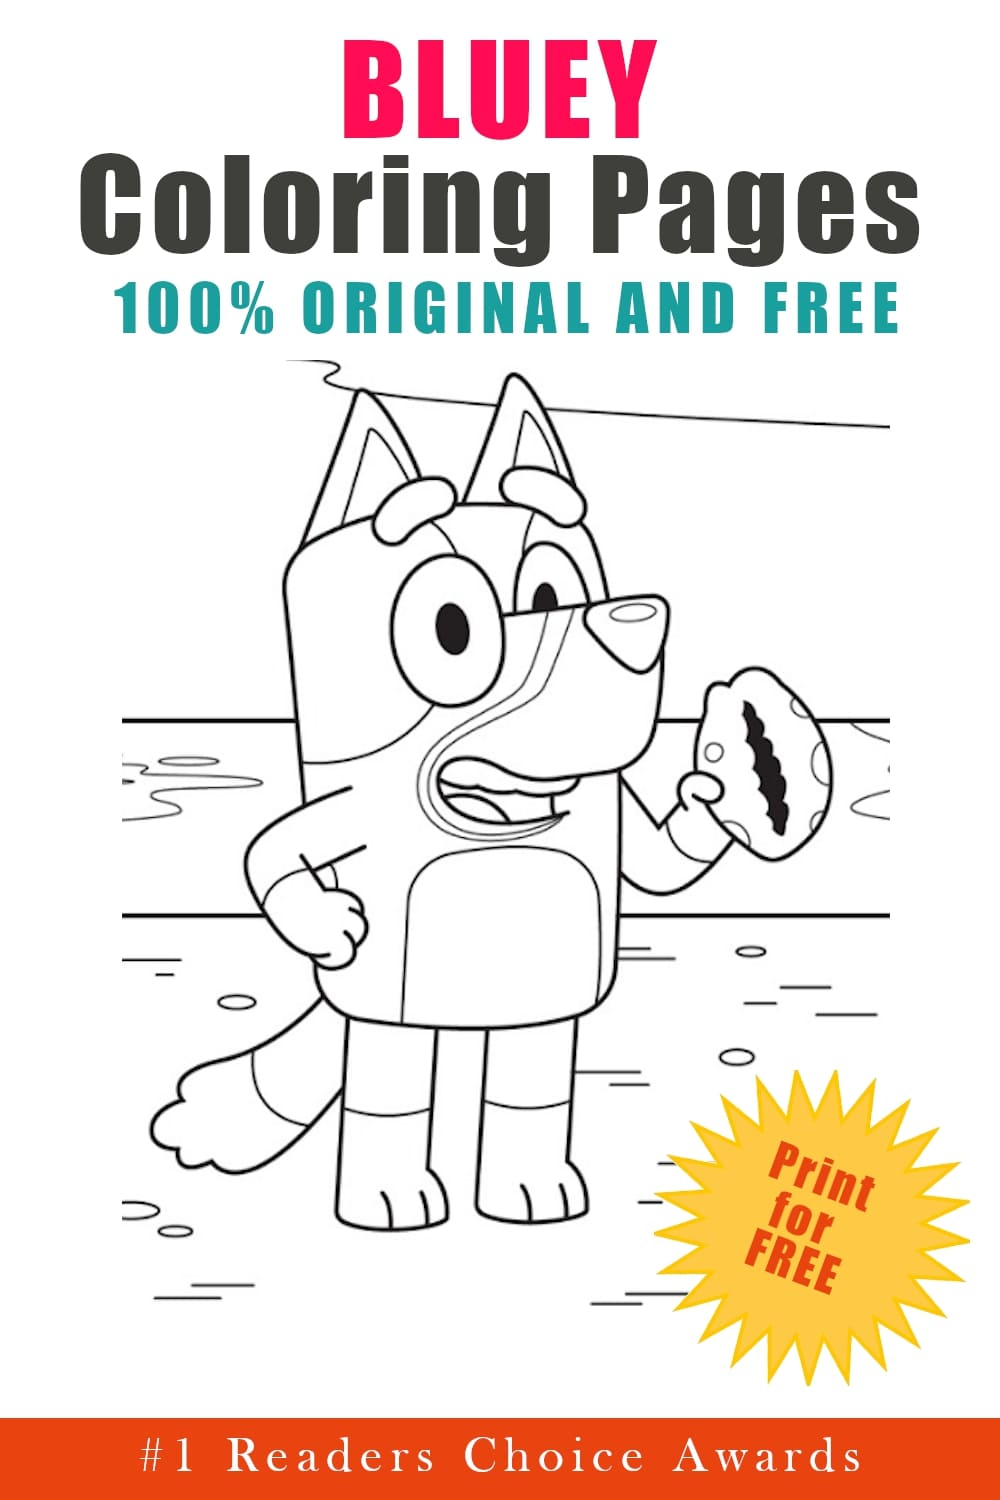 original and free bluey coloring pages